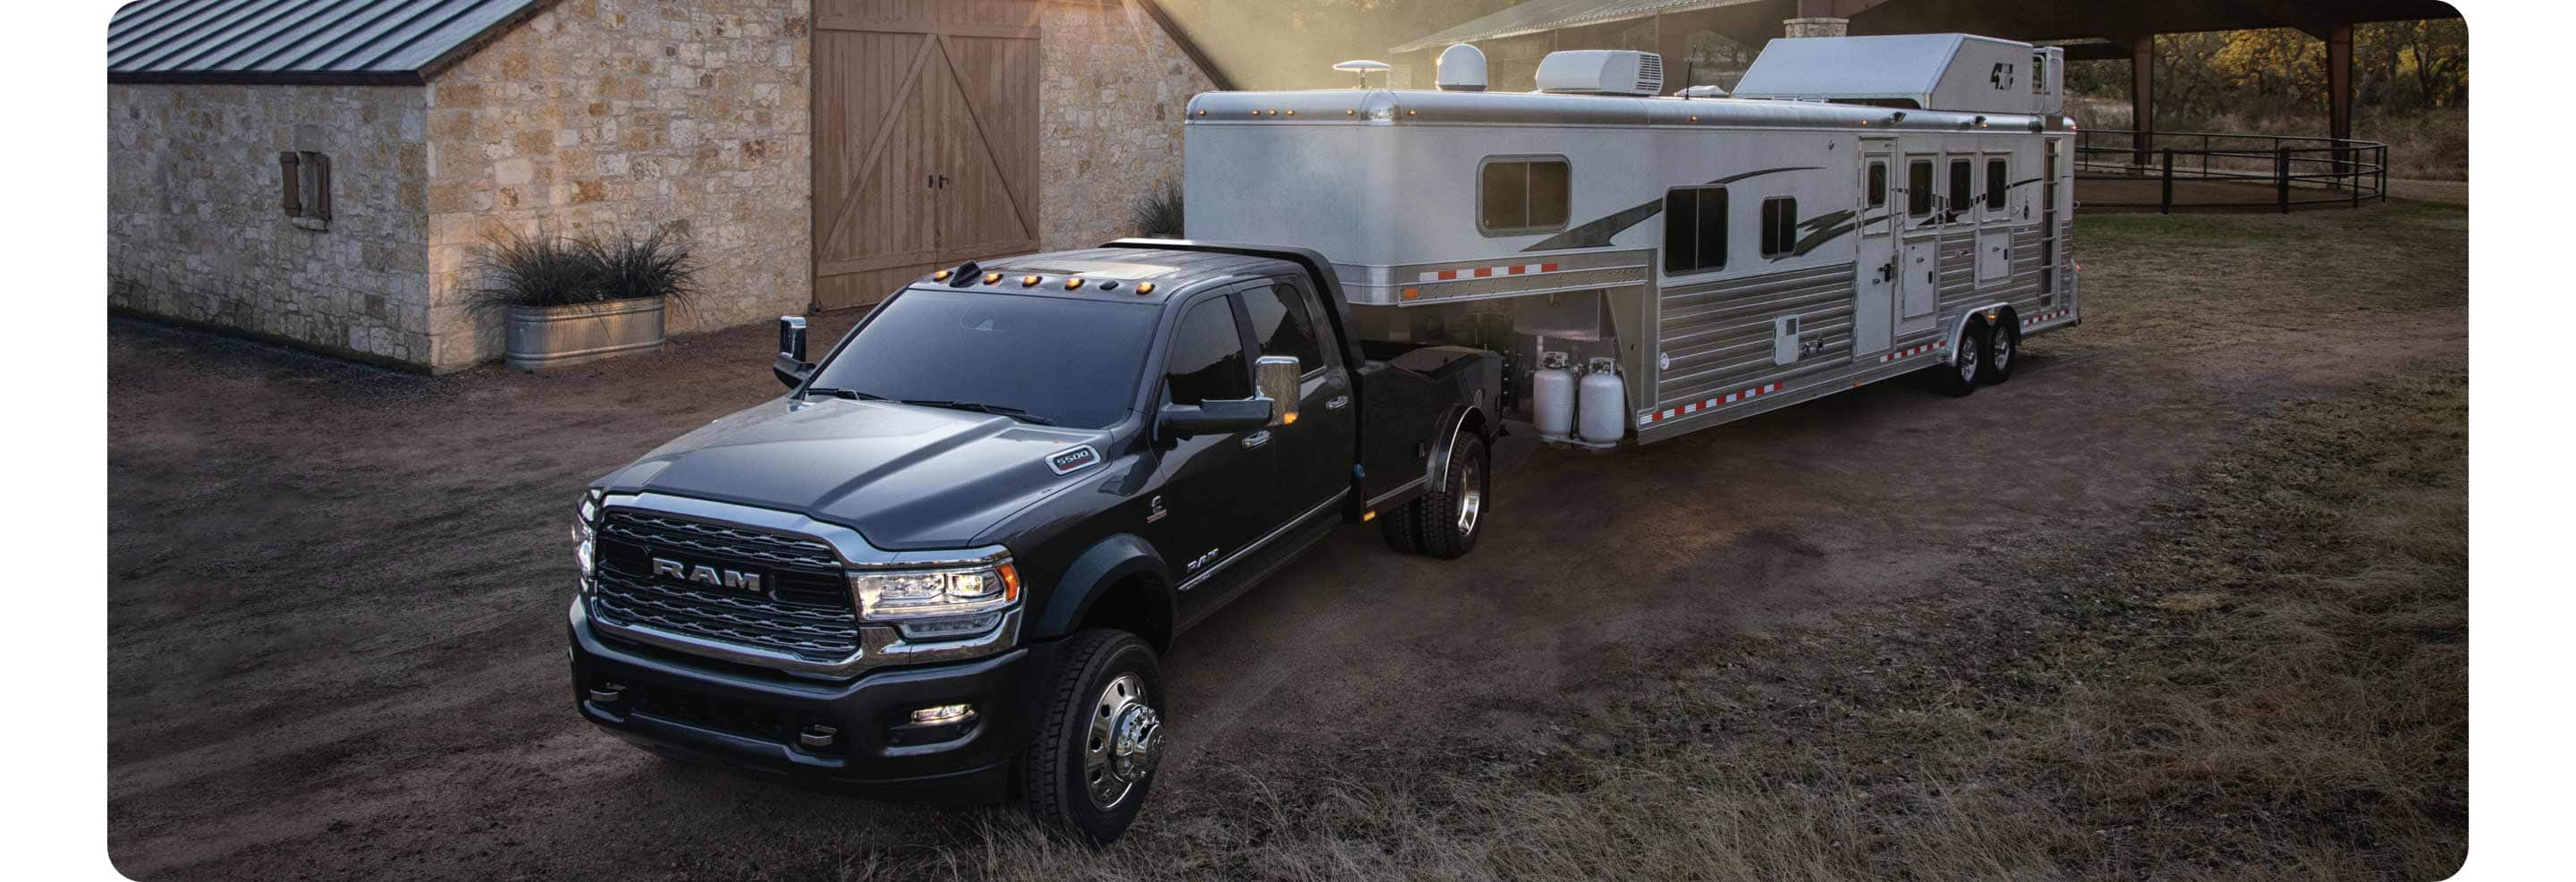 2021 Ram Chassis Cab Horsepower Available Engines More